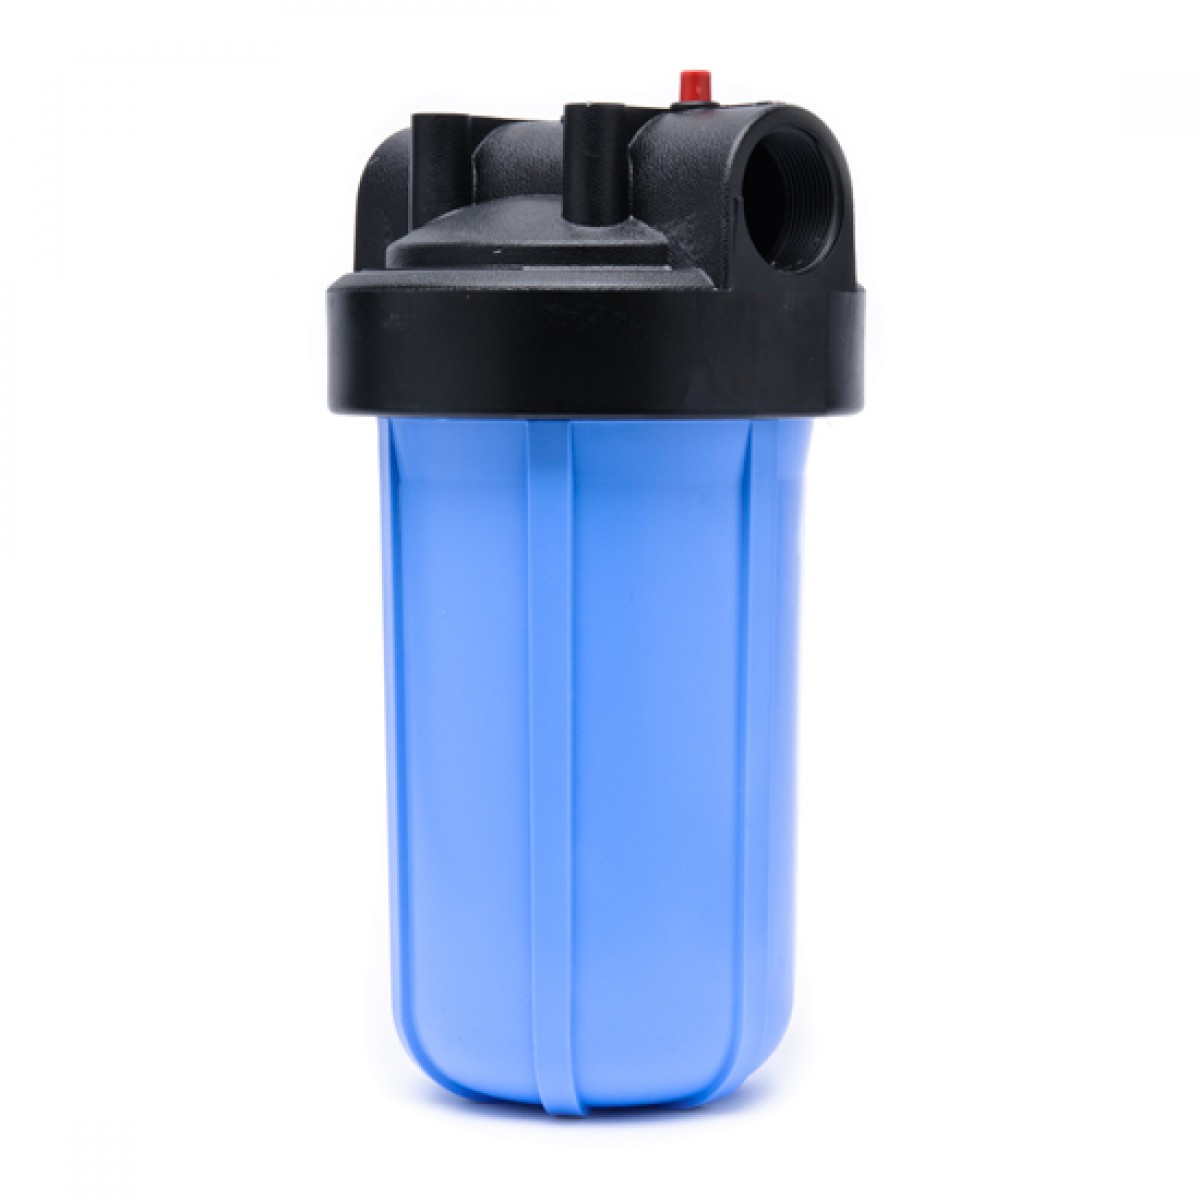 In Home Water Filtration Hd 950 15 In Whole House Water Filter System